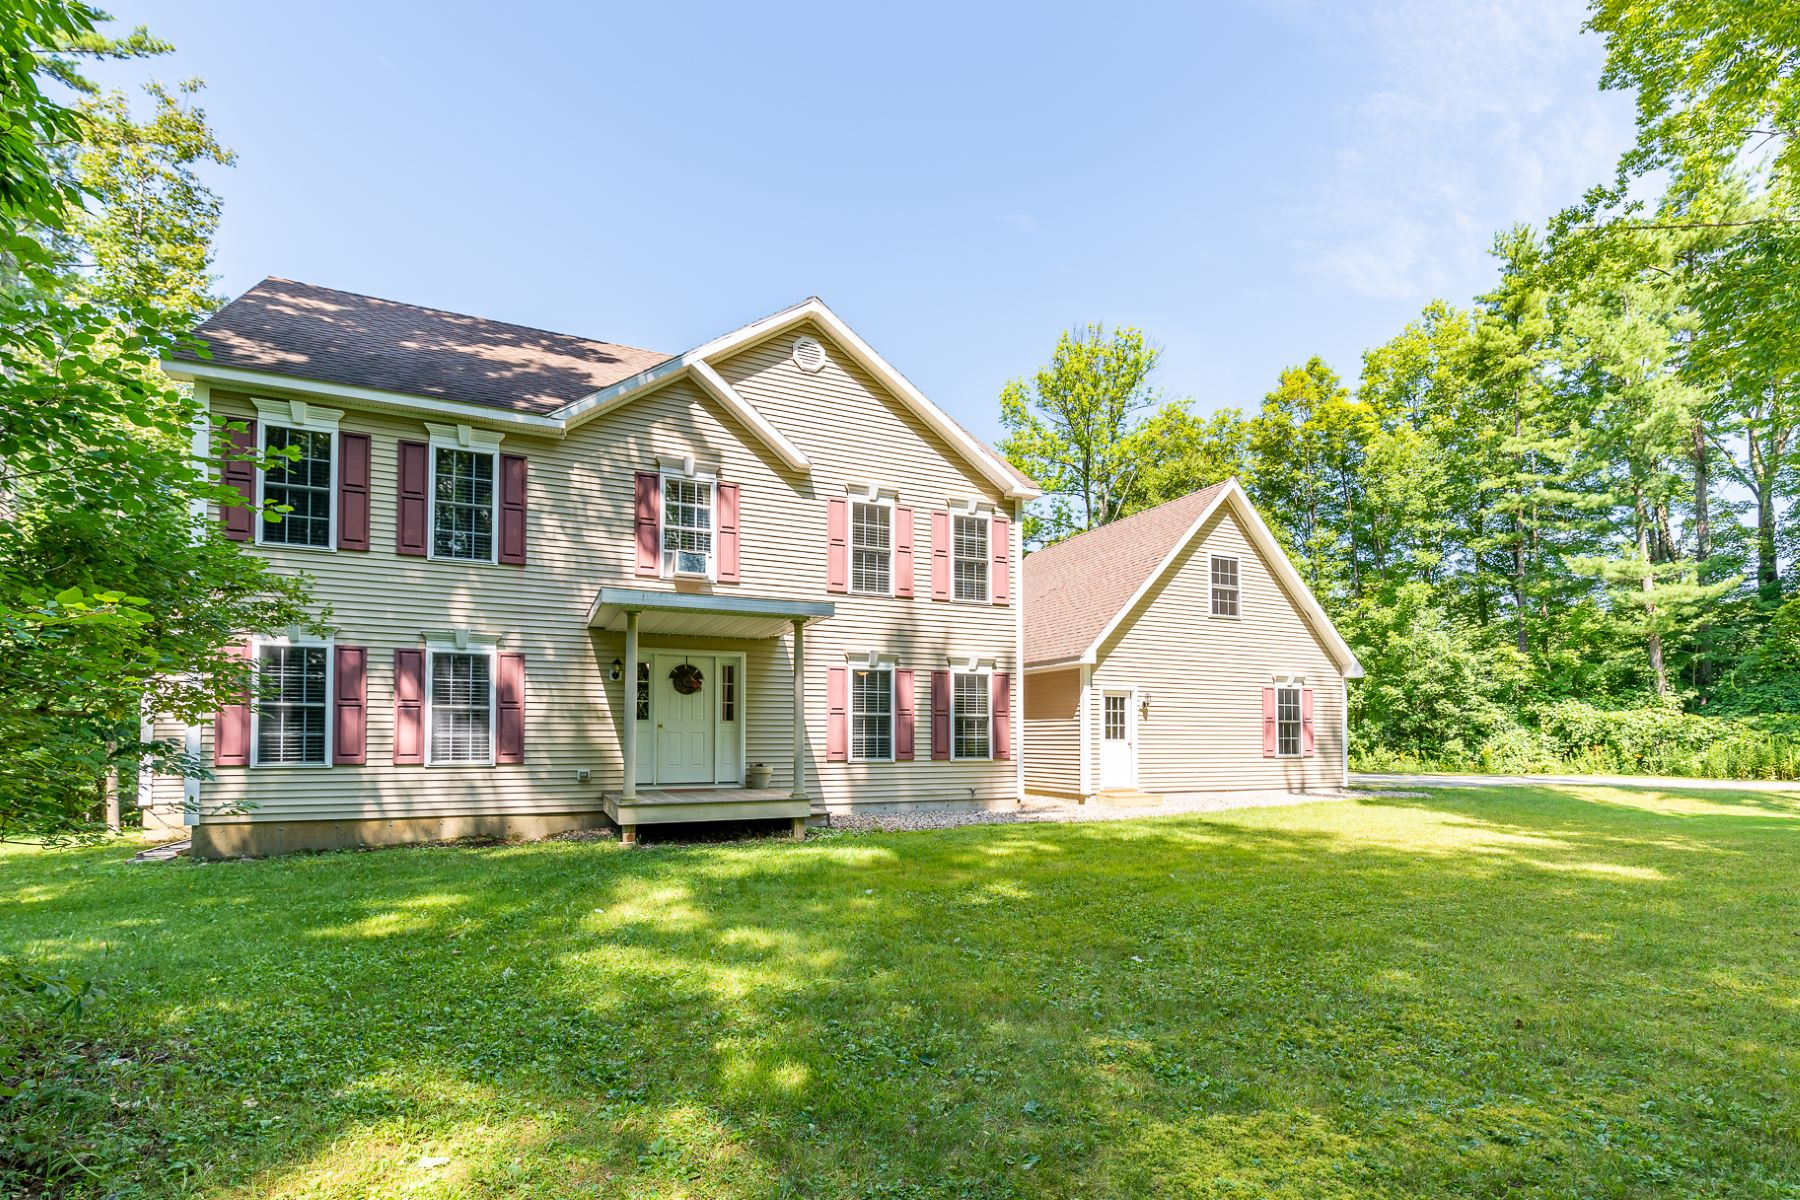 Single Family Homes for Sale at Charming, secluded, well loved 3 bed / 2.5 bath 2801 North Rd Sunderland, Vermont 05250 United States